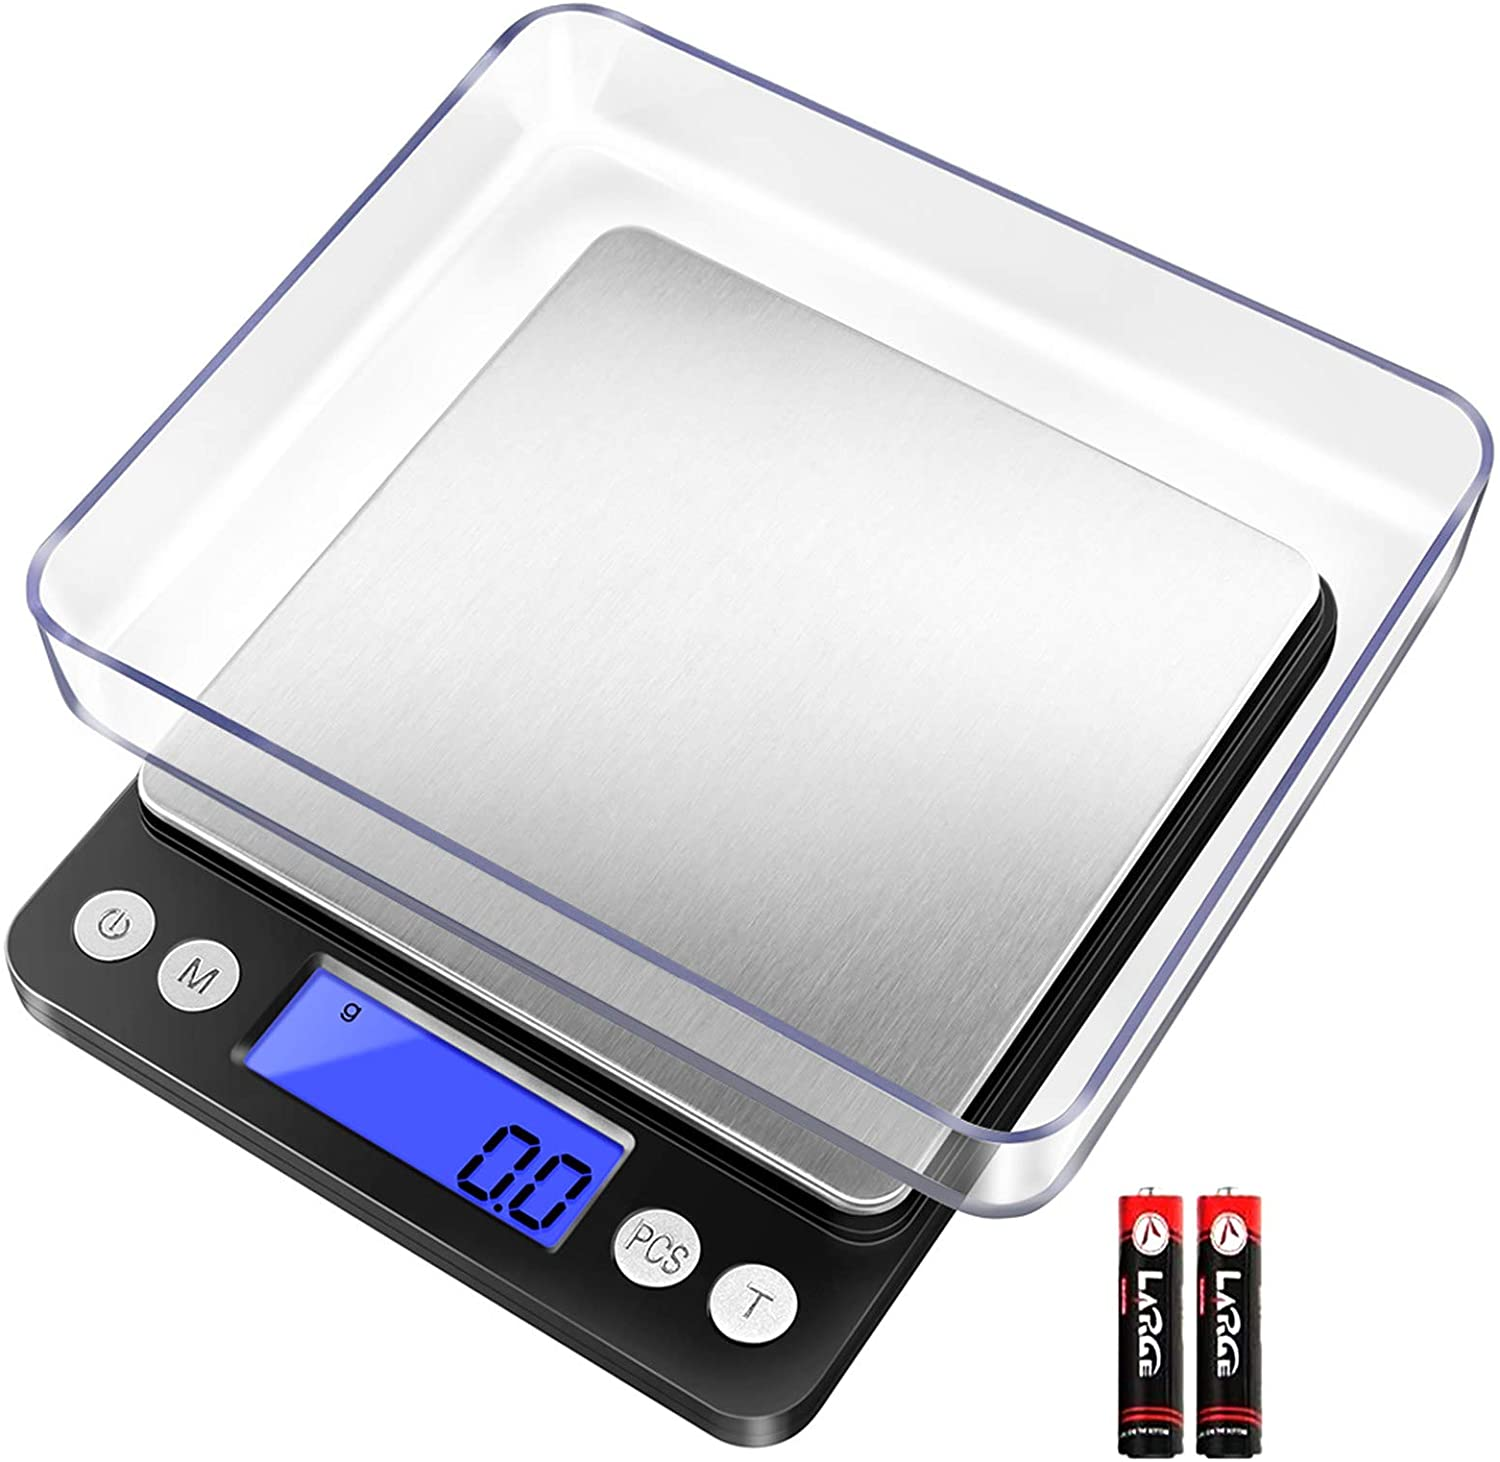 Fuzion Digital Kitchen Scale 3000g/ 0.1g, Pocket Food Scale 6 Units Conversion, Gram Scale with 2 Trays, LCD, Tare Function, Jewelry Scale(Battery Included)